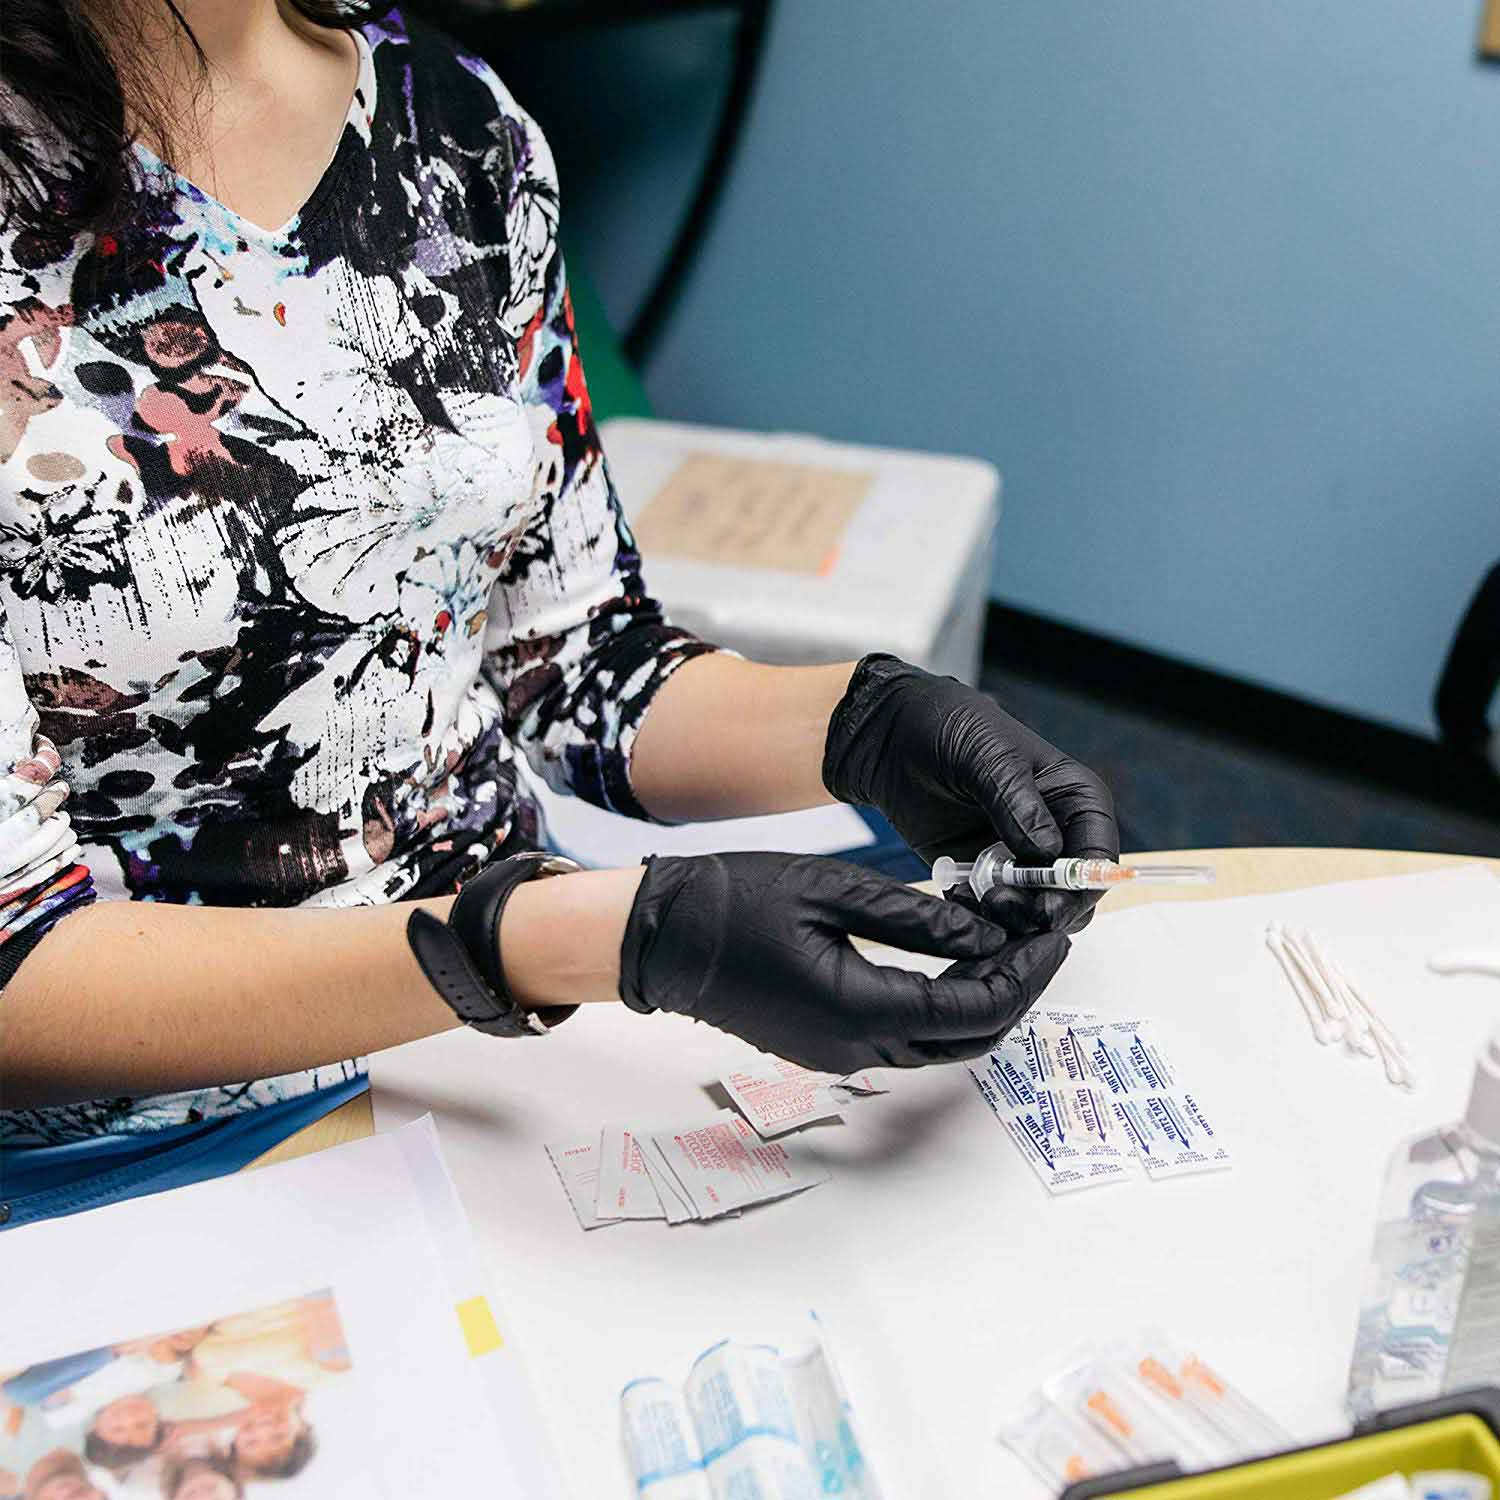 Woman wearing latex gloves holding a needle